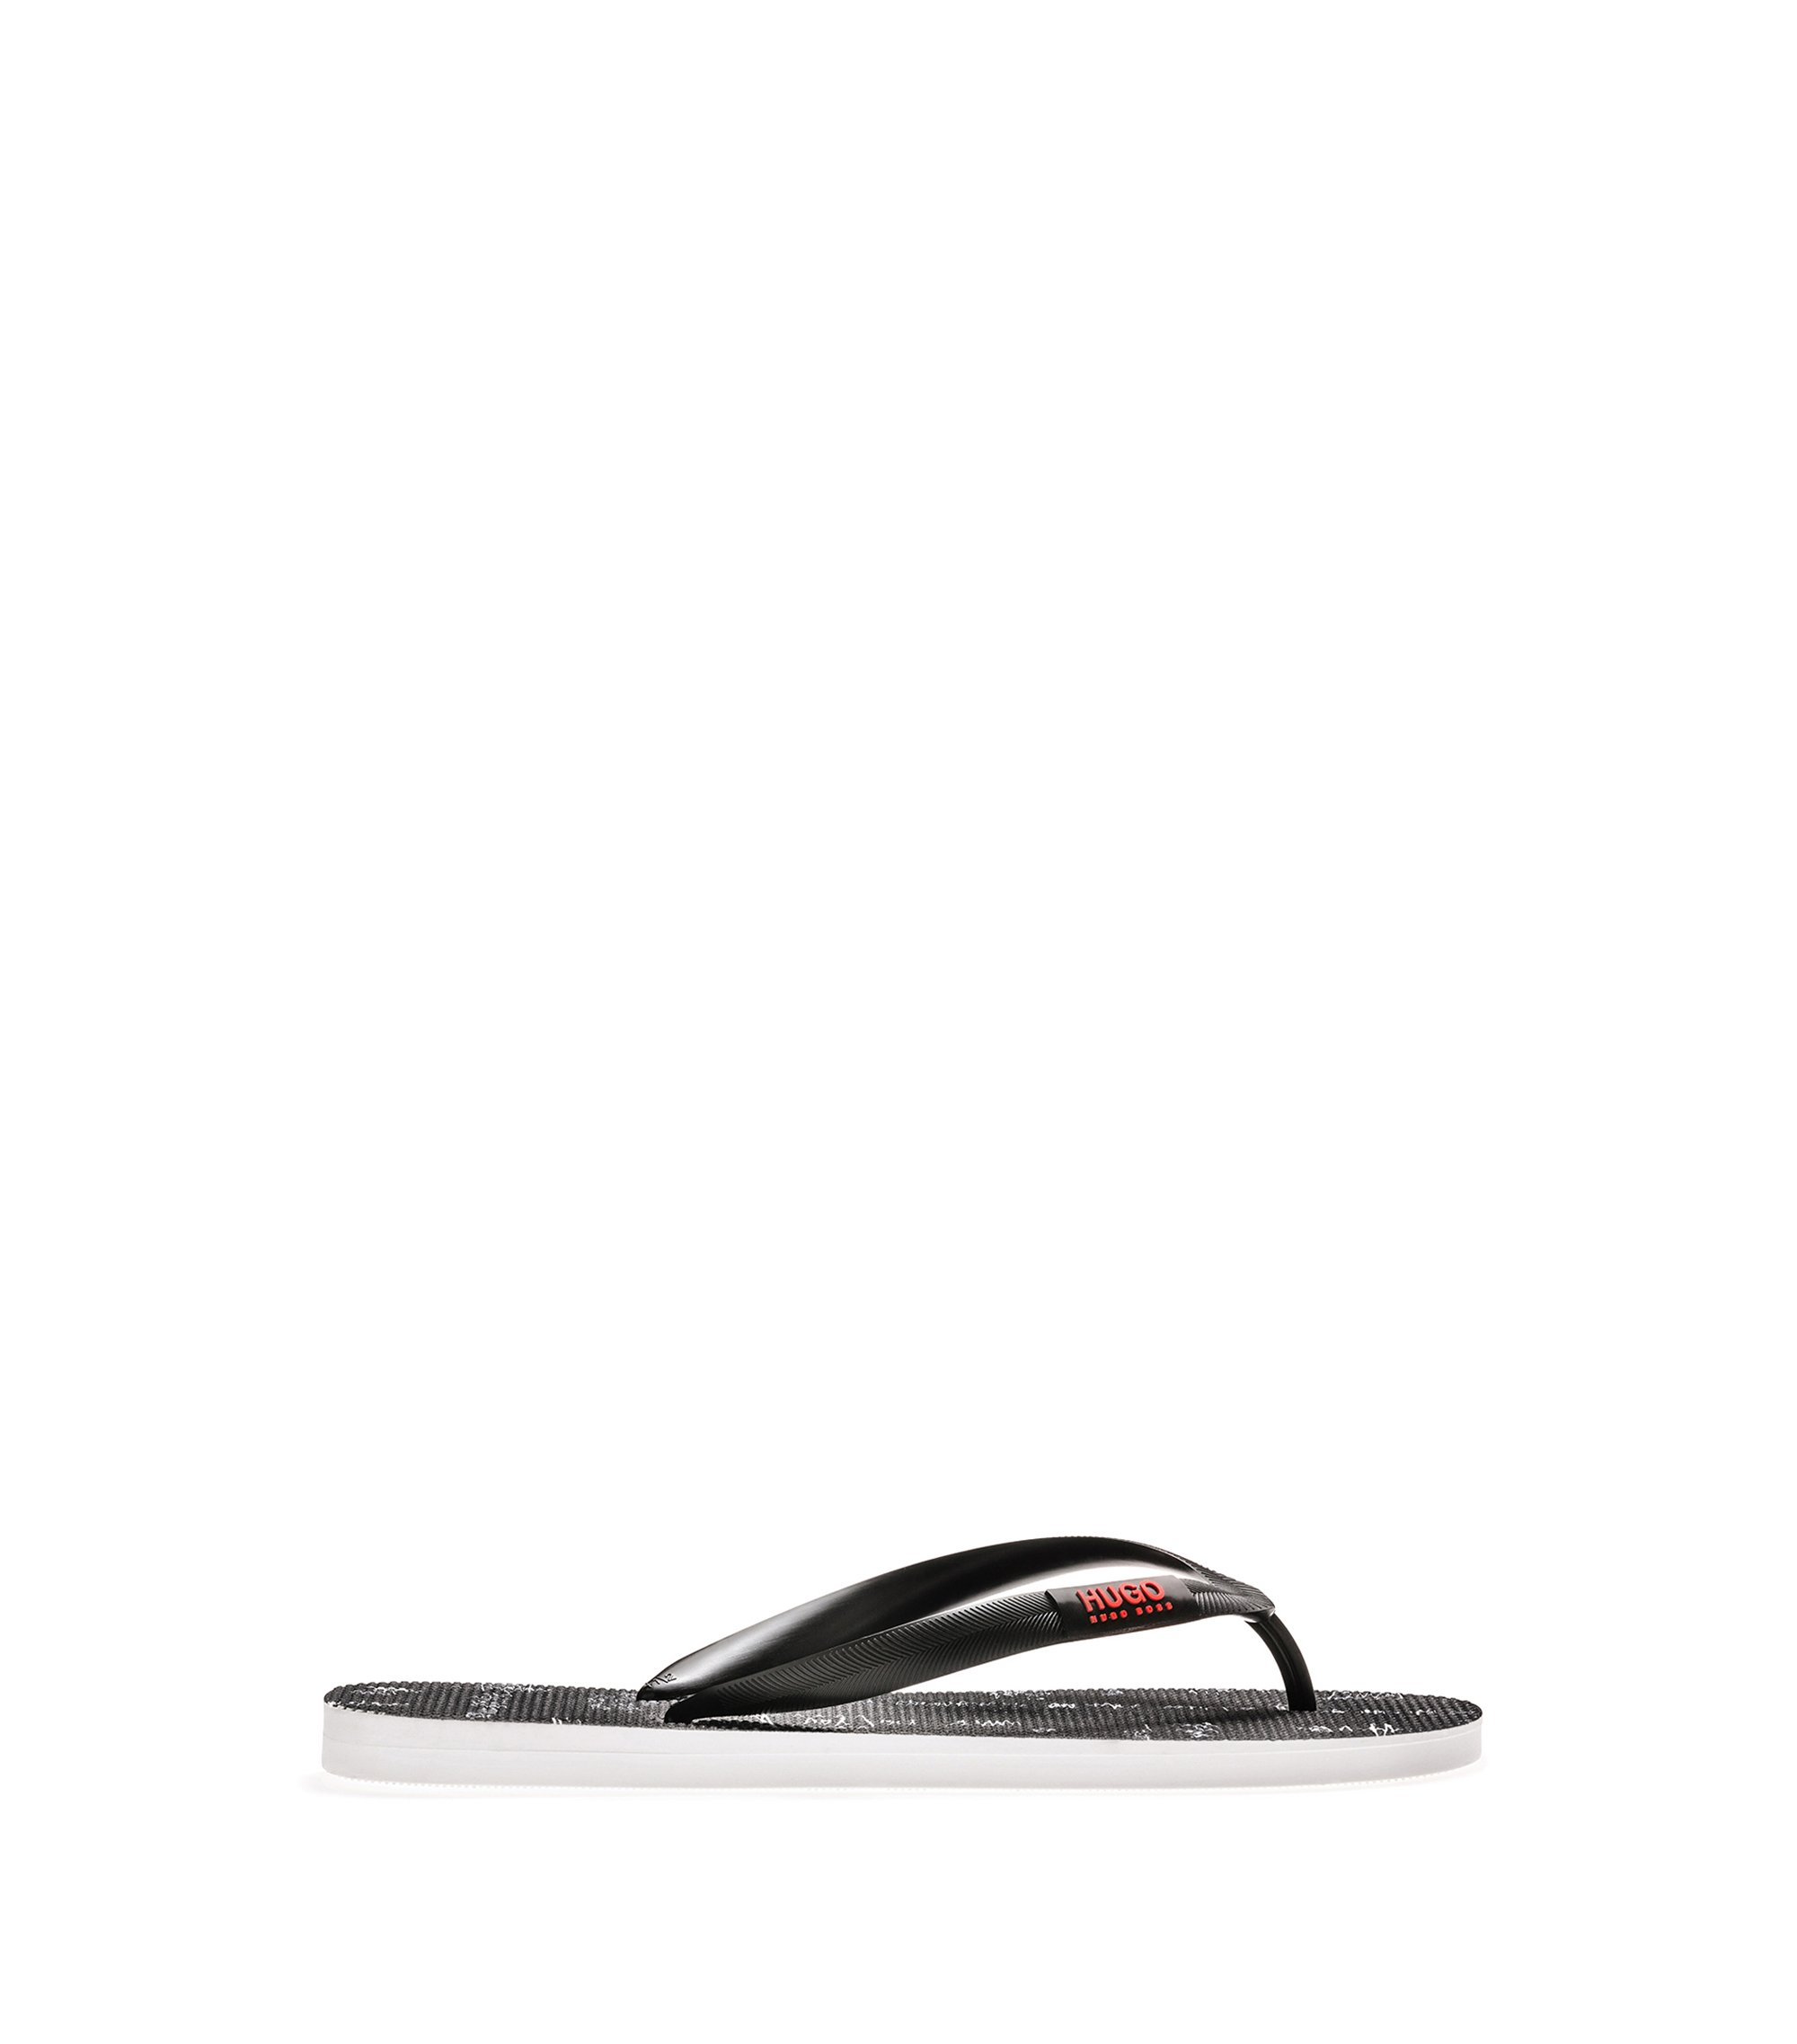 Toe-post flip-flops with seasonal artwork, Black